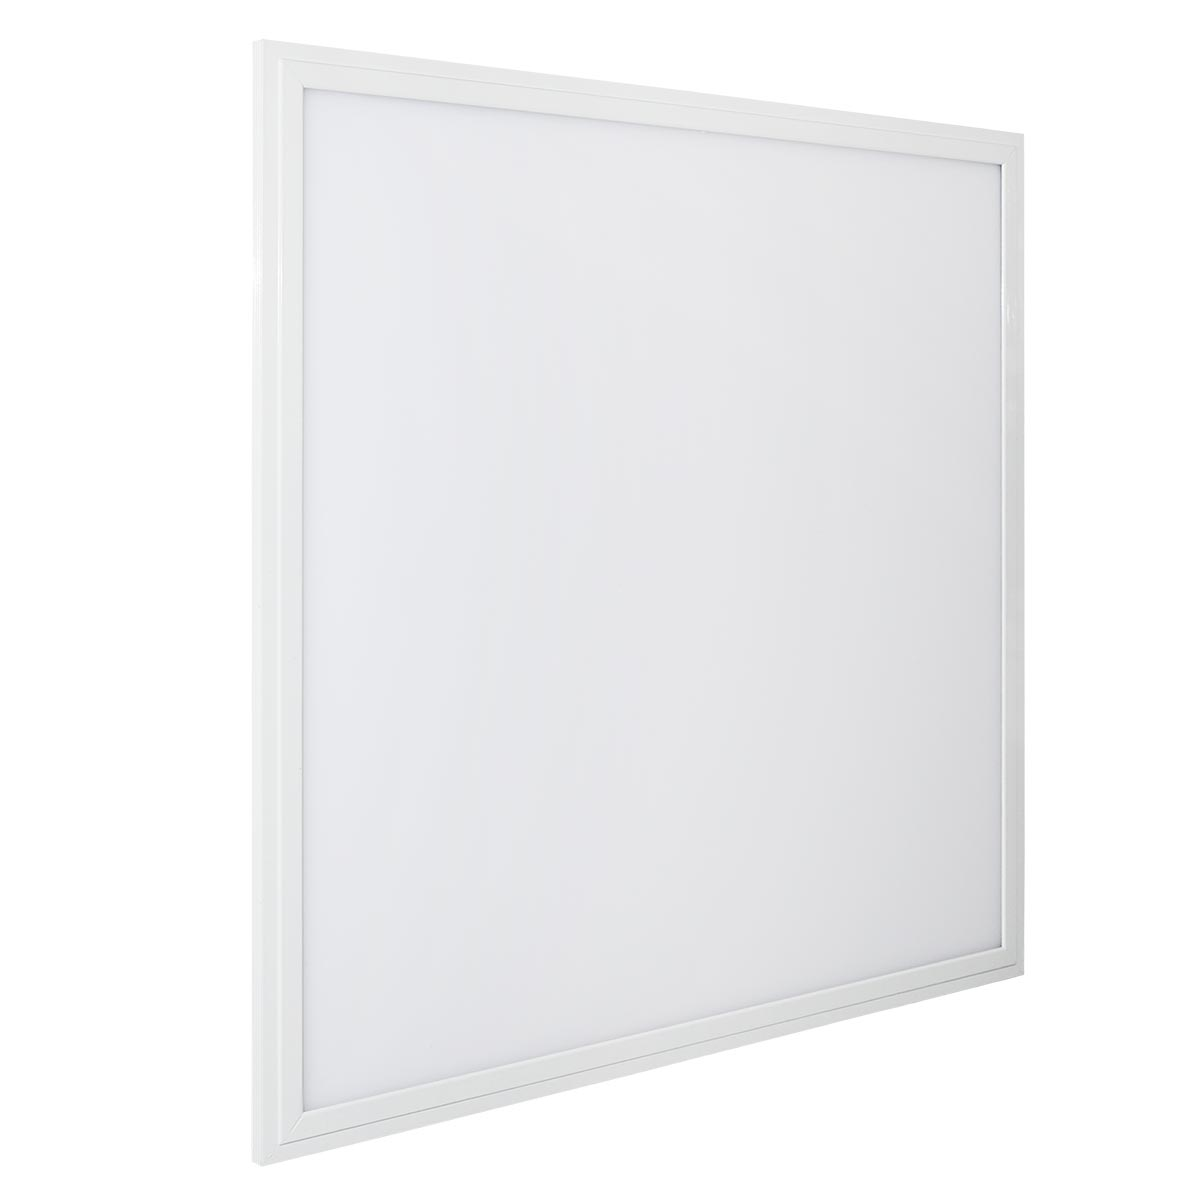 LED Light Panel 624x624 Weiss 40W 4000K 4'800lm IP20